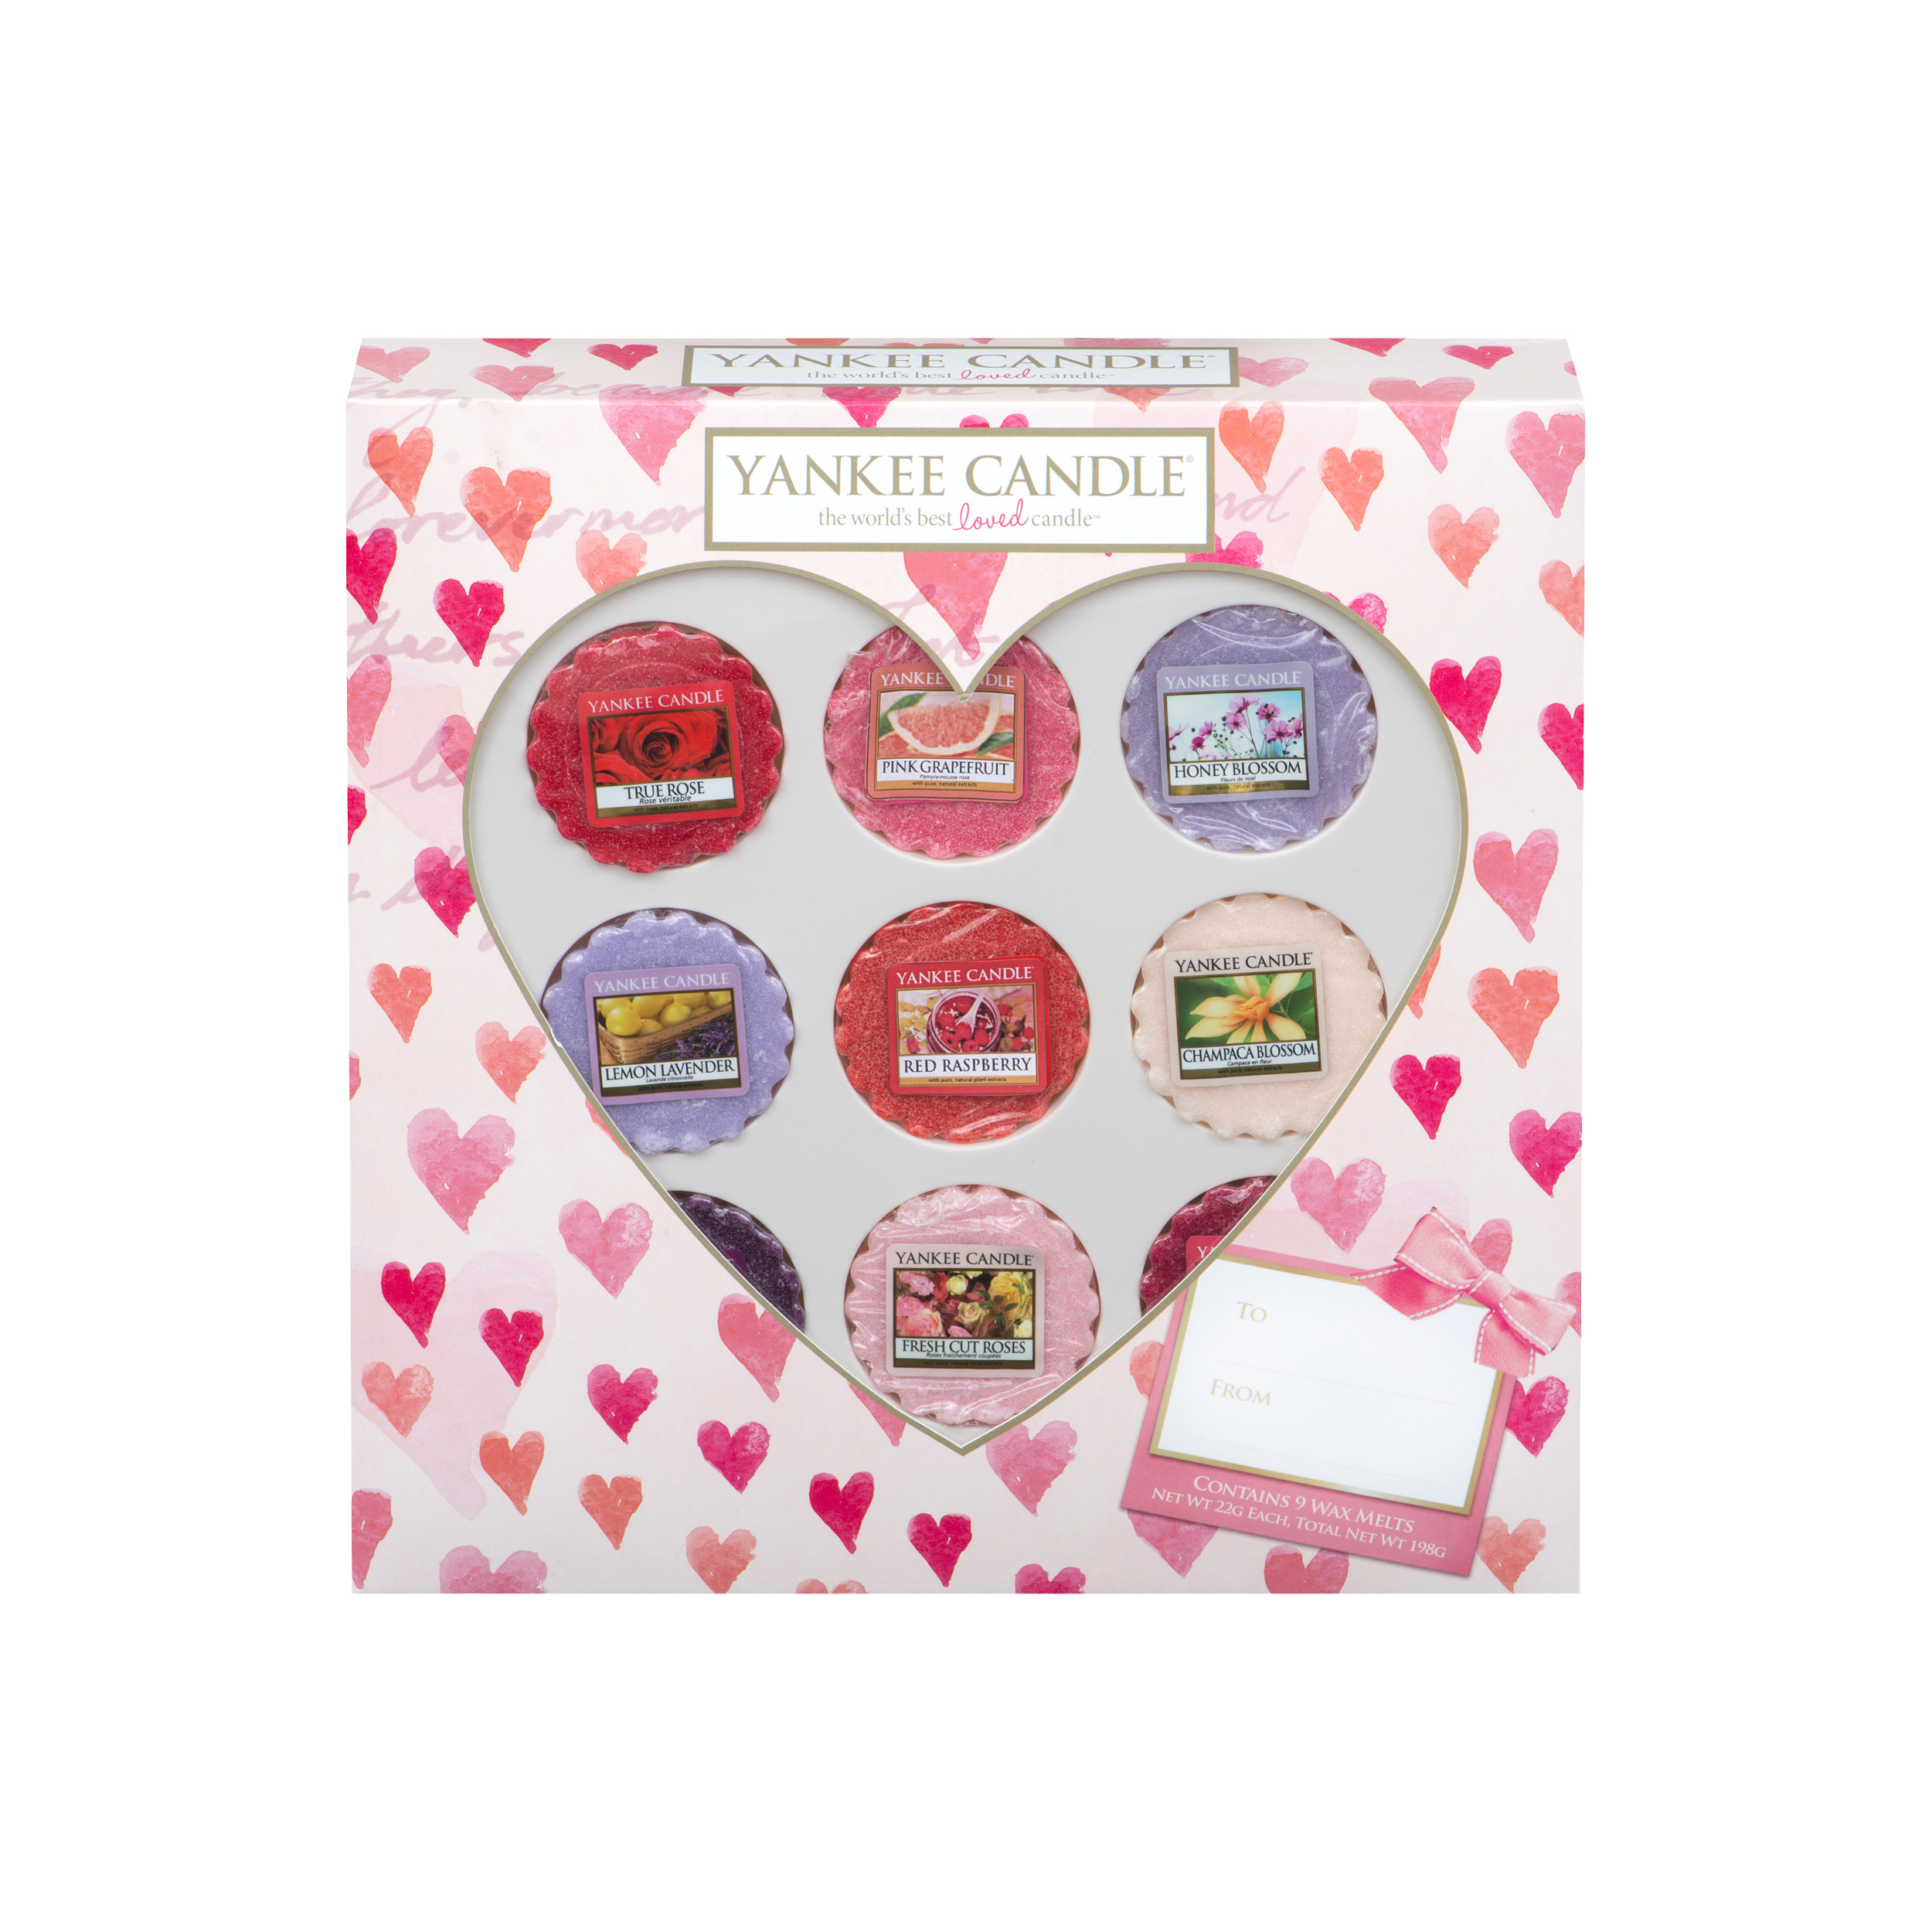 Yankee Candle Gift Set Valentines Day 9 Tarts Scented Wax Scent 1334537